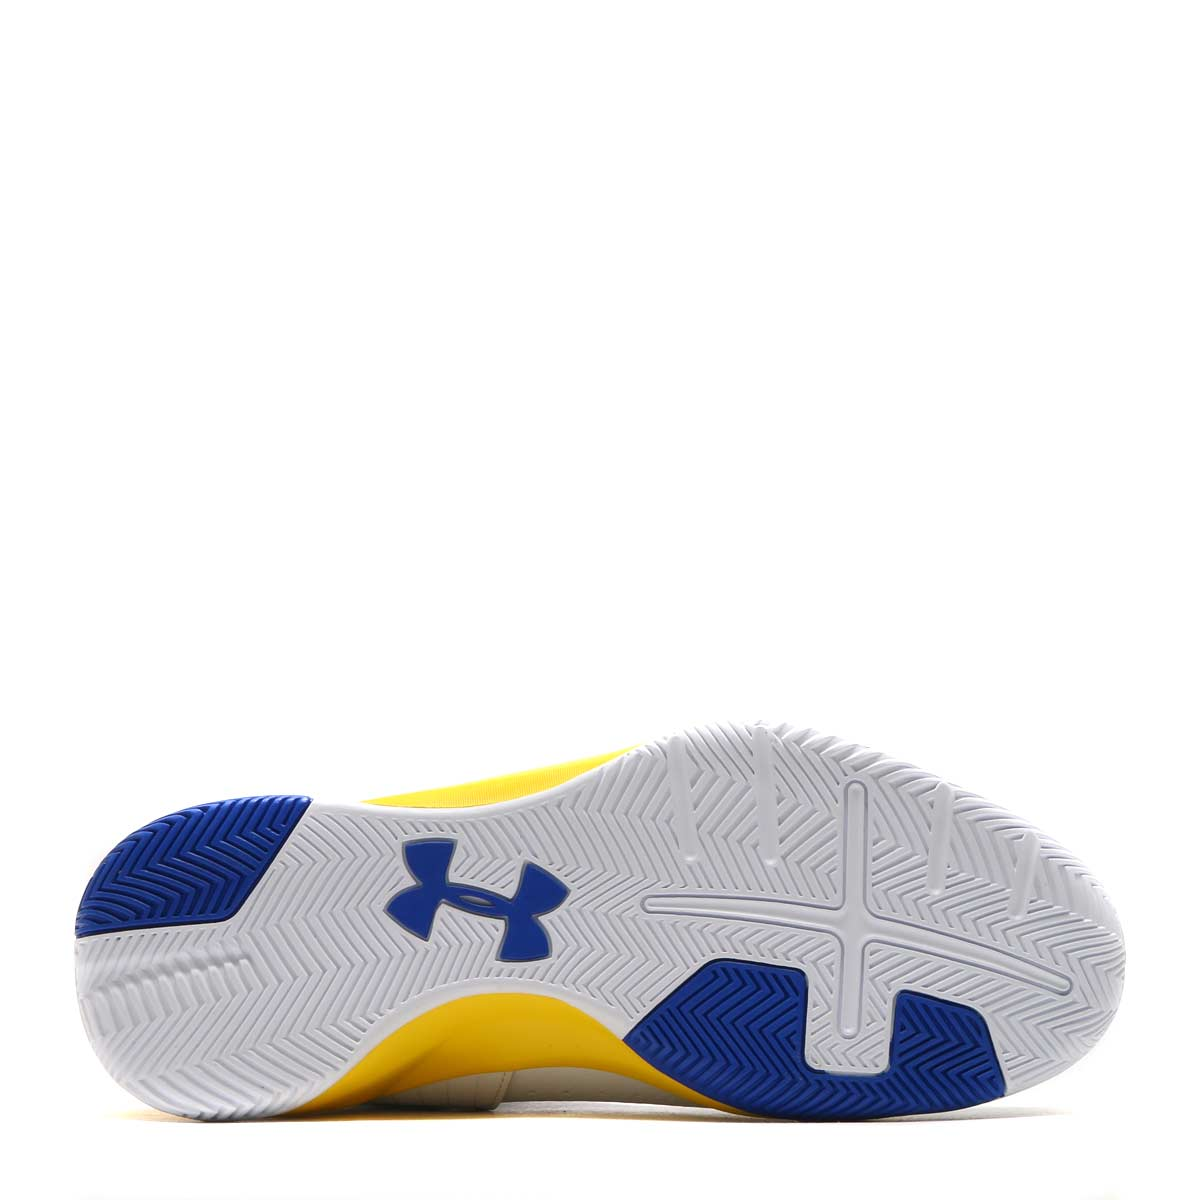 newest 8bd61 00323 UNDER ARMOUR UA ROCKET 2 SL (under Armour UA rocket 2 SL) WHITE/TEAM  ROYAL/TAXI 17SS-I